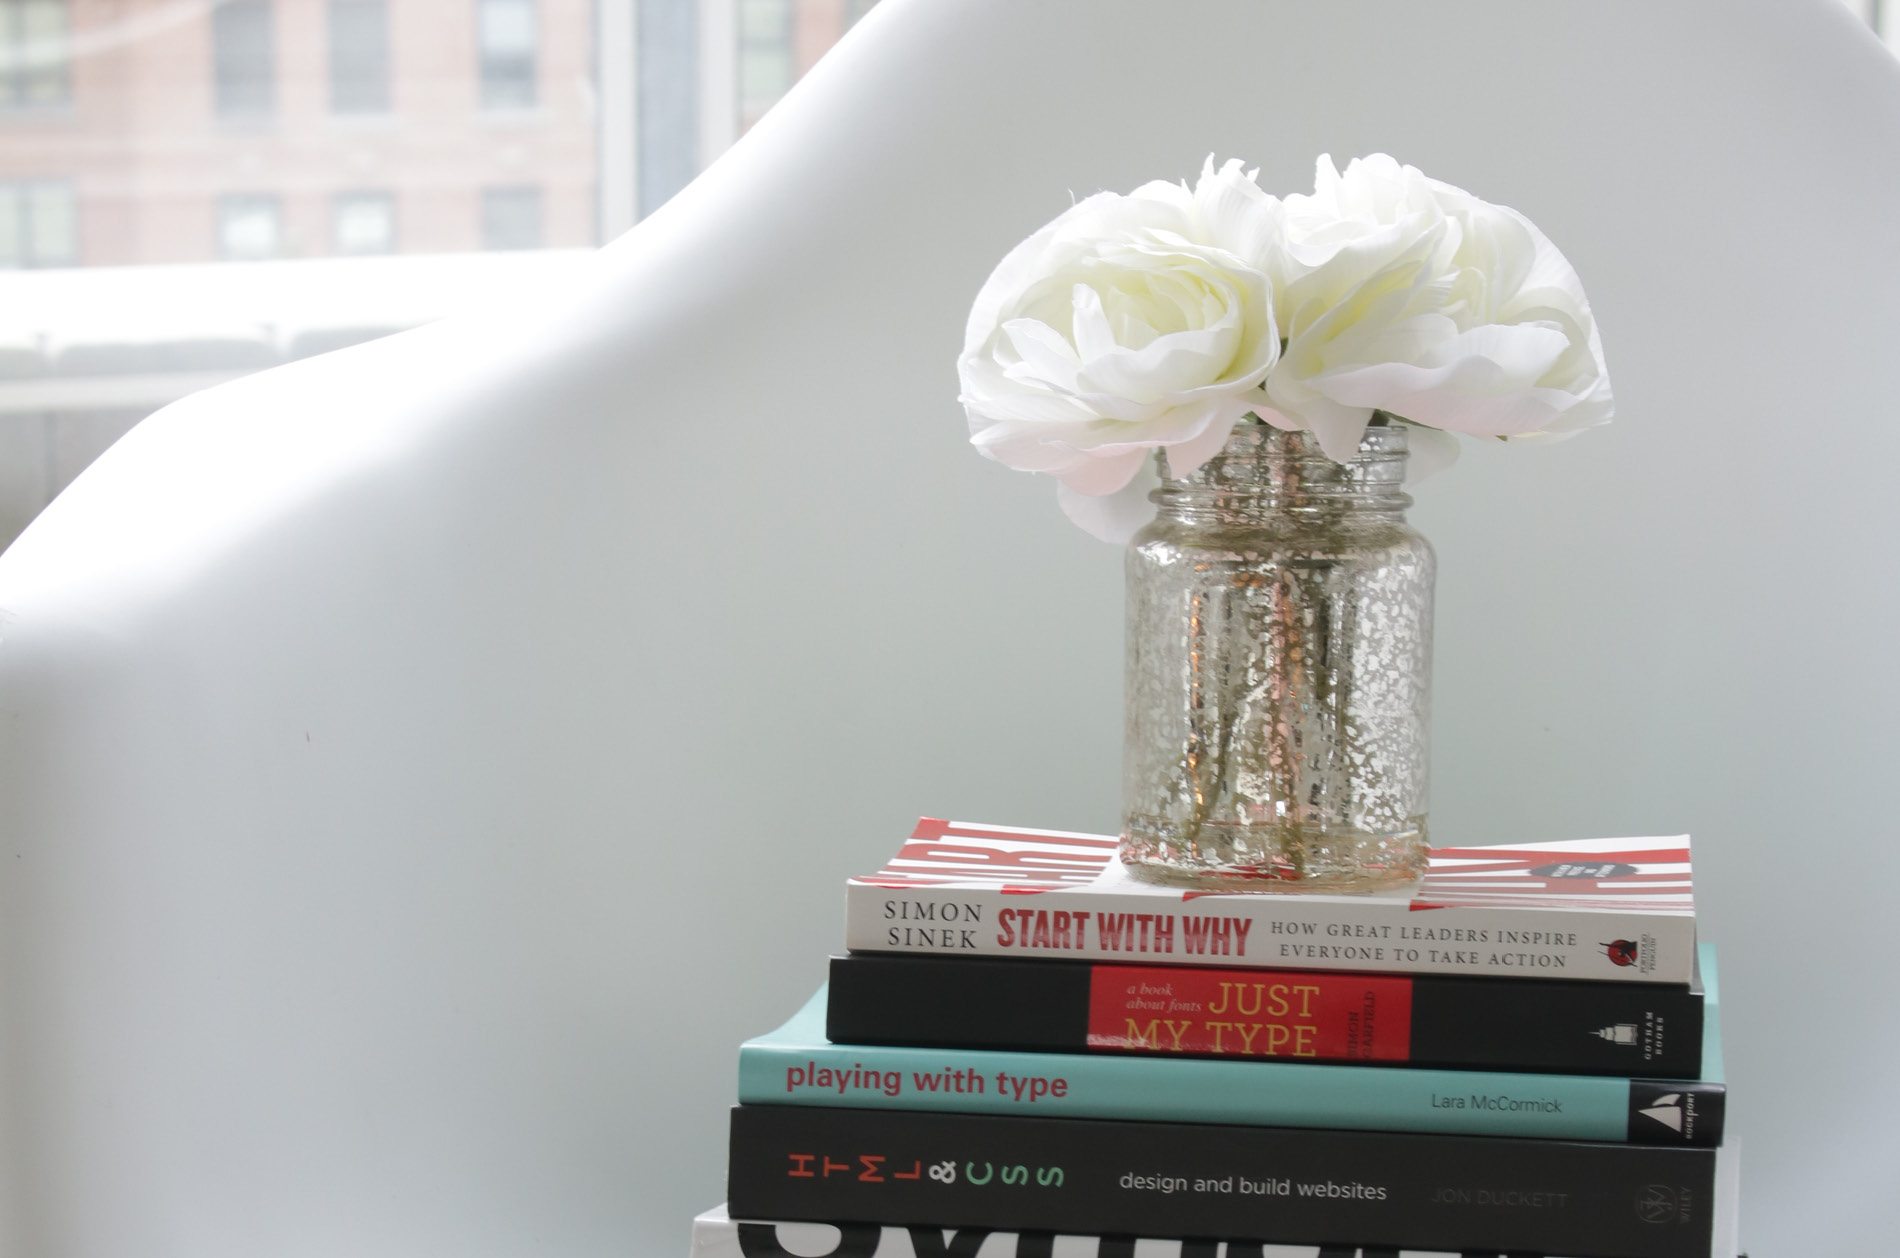 Various books and flowers in vase